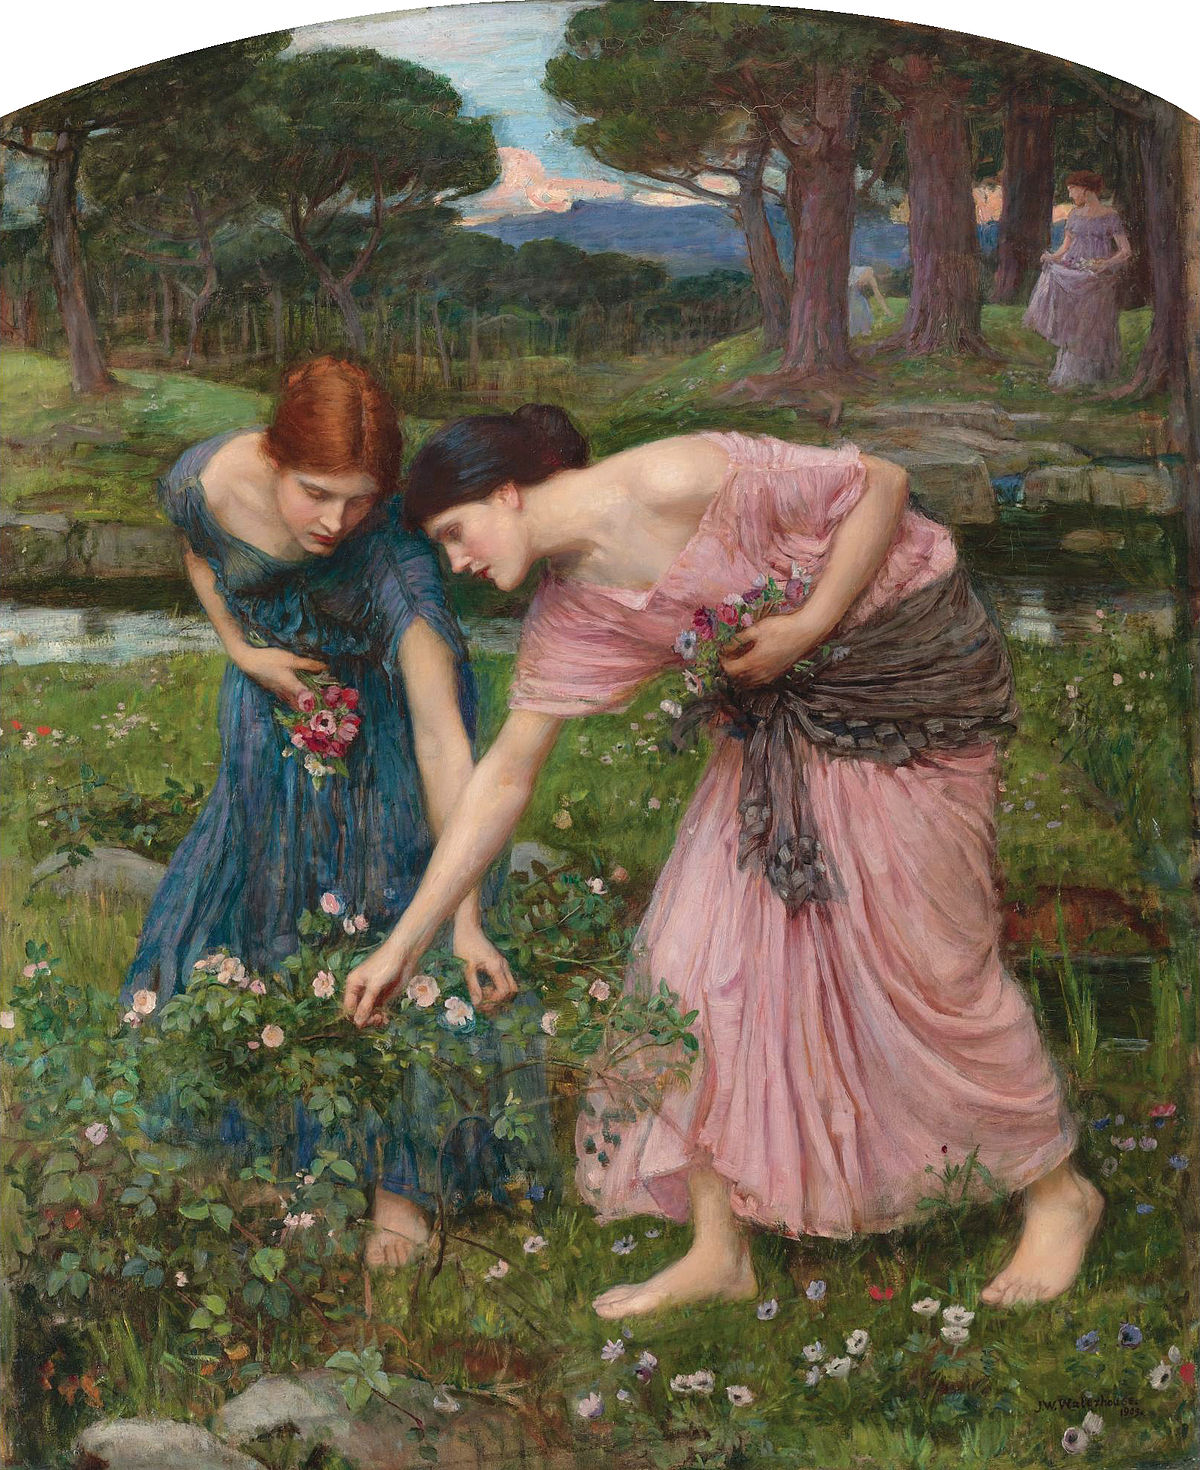 to virgins to make much of By: robert herrick from hesperides (1648) gather ye rosebuds while ye may,  old time is still a-flying : and this same flower that smiles to-day.